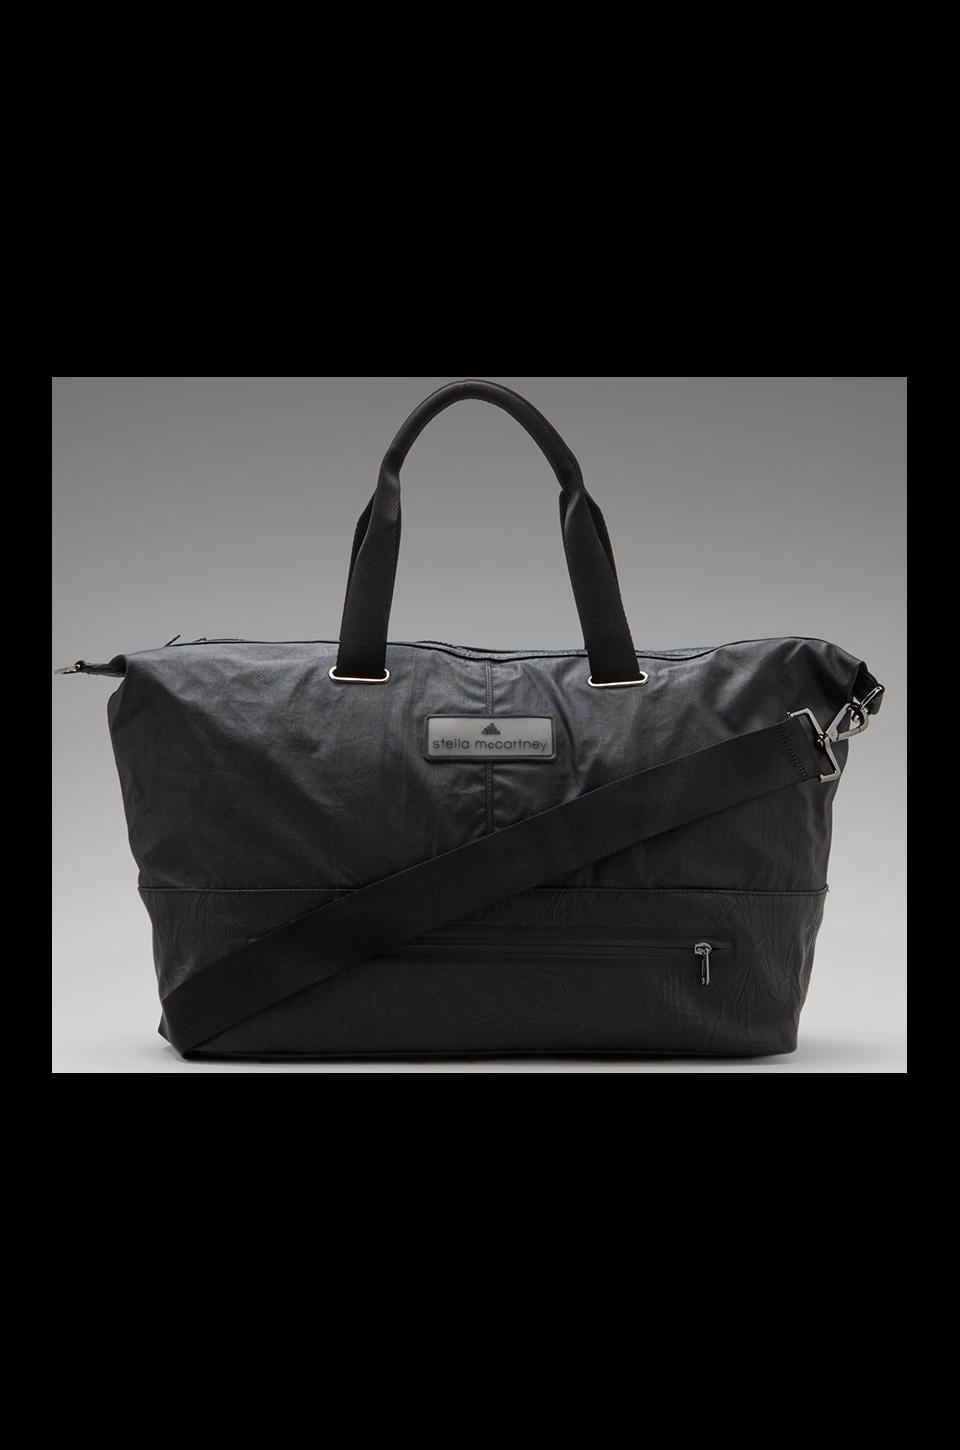 adidas by Stella McCartney Big Bag in Black/Sharp Grey